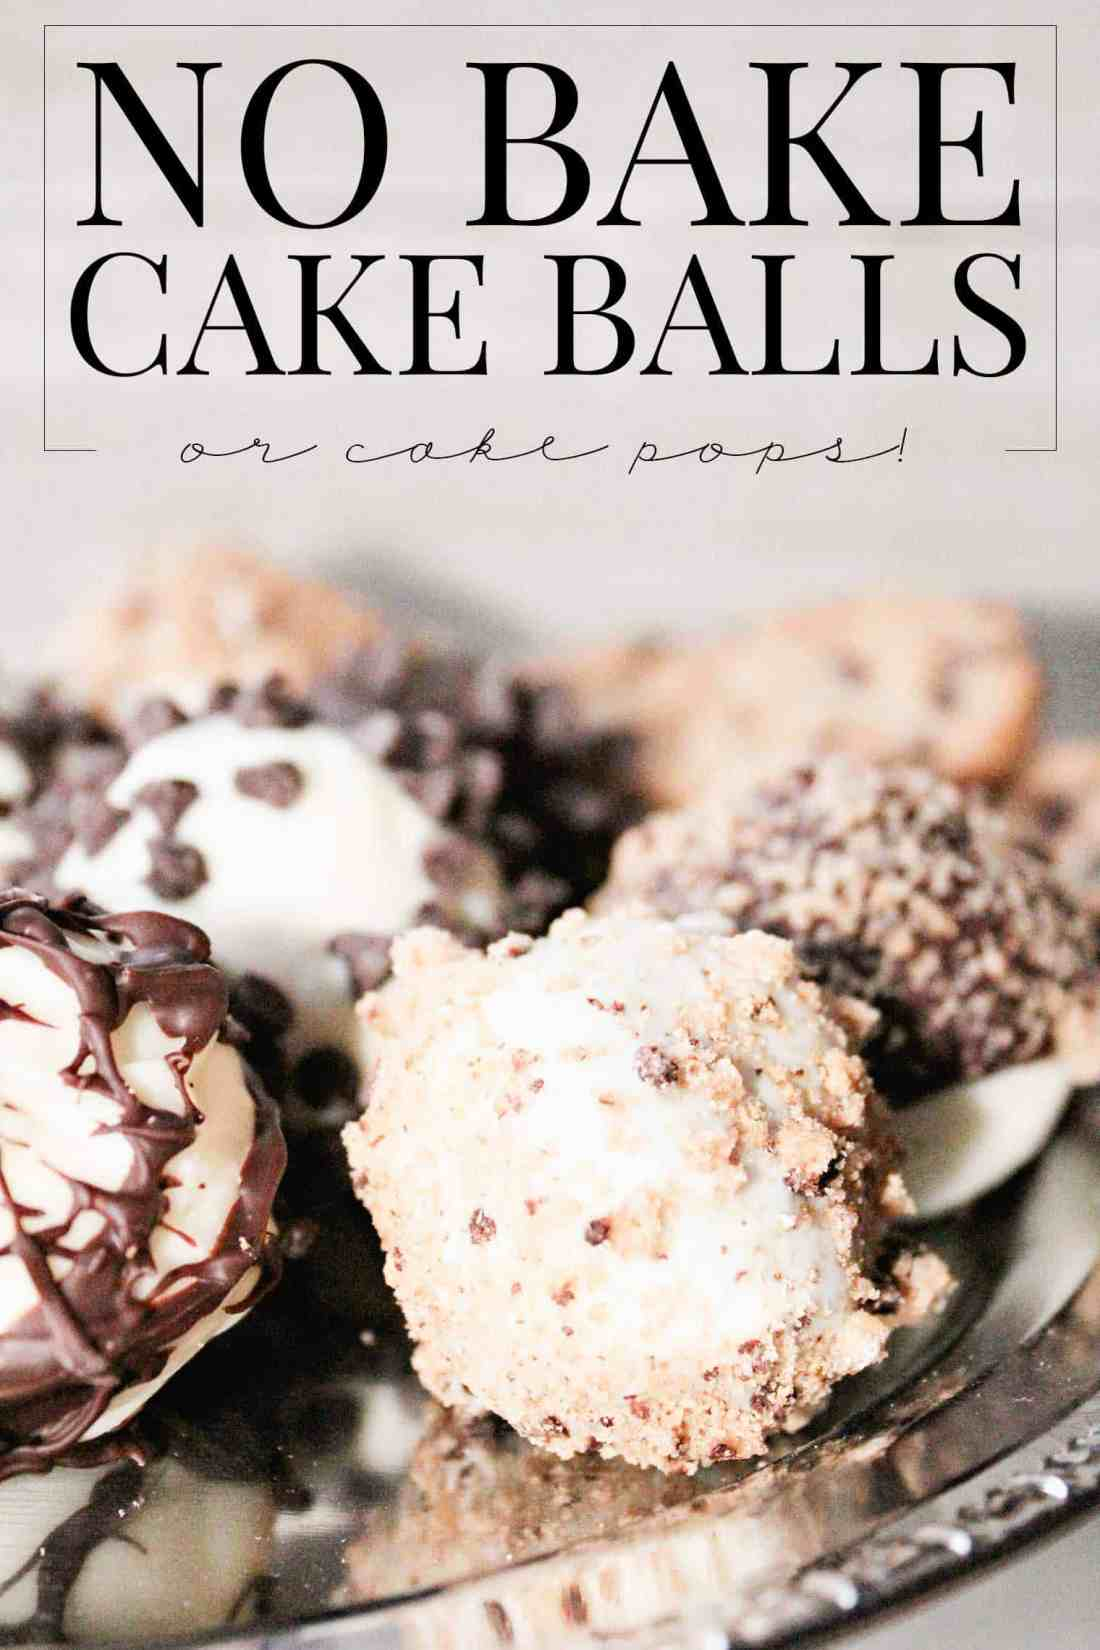 cake balls, decorated, on a silver platter